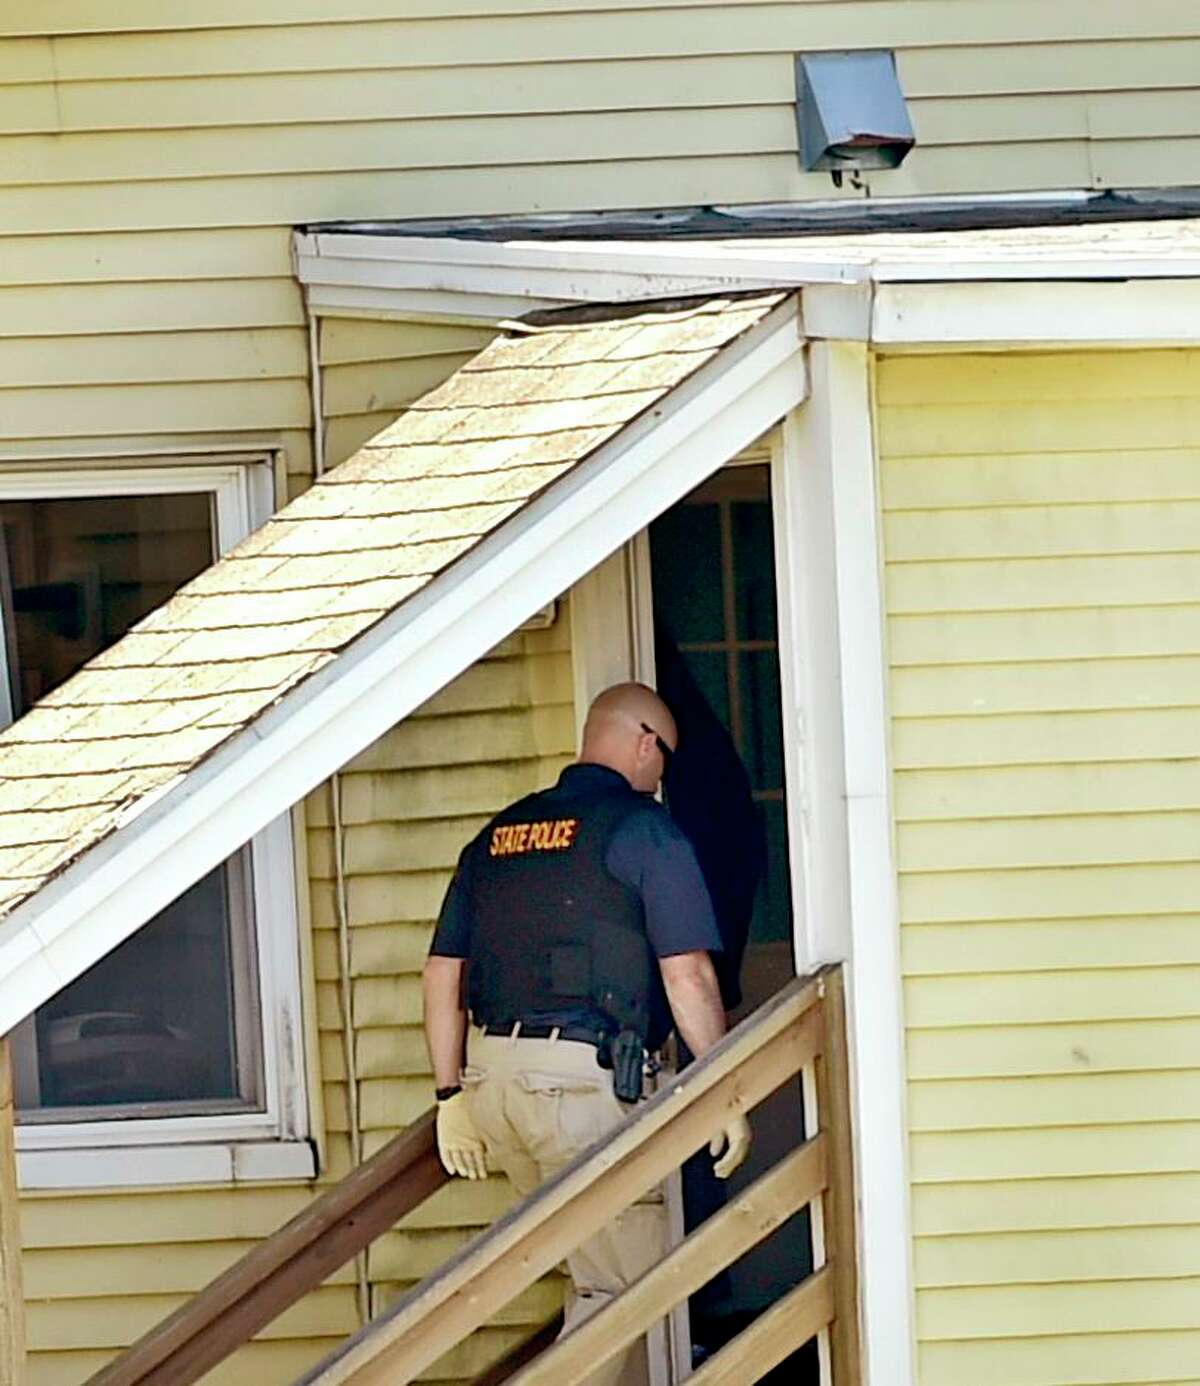 Derby, Connecticut - Sunday, May 24, 2020: Connecticut State Police enters a house on Roosevelt Drive in Derby Sunday afternoon where a male was found deceased in the house during the search for suspected murder Peter Manfredonia, 23, described as armed and dangerous. State Police said Manfredonia is believed to be armed with pistol and long guns. Manfredonia is wanted in a homicide and serious assault in northeastern Connecticut.